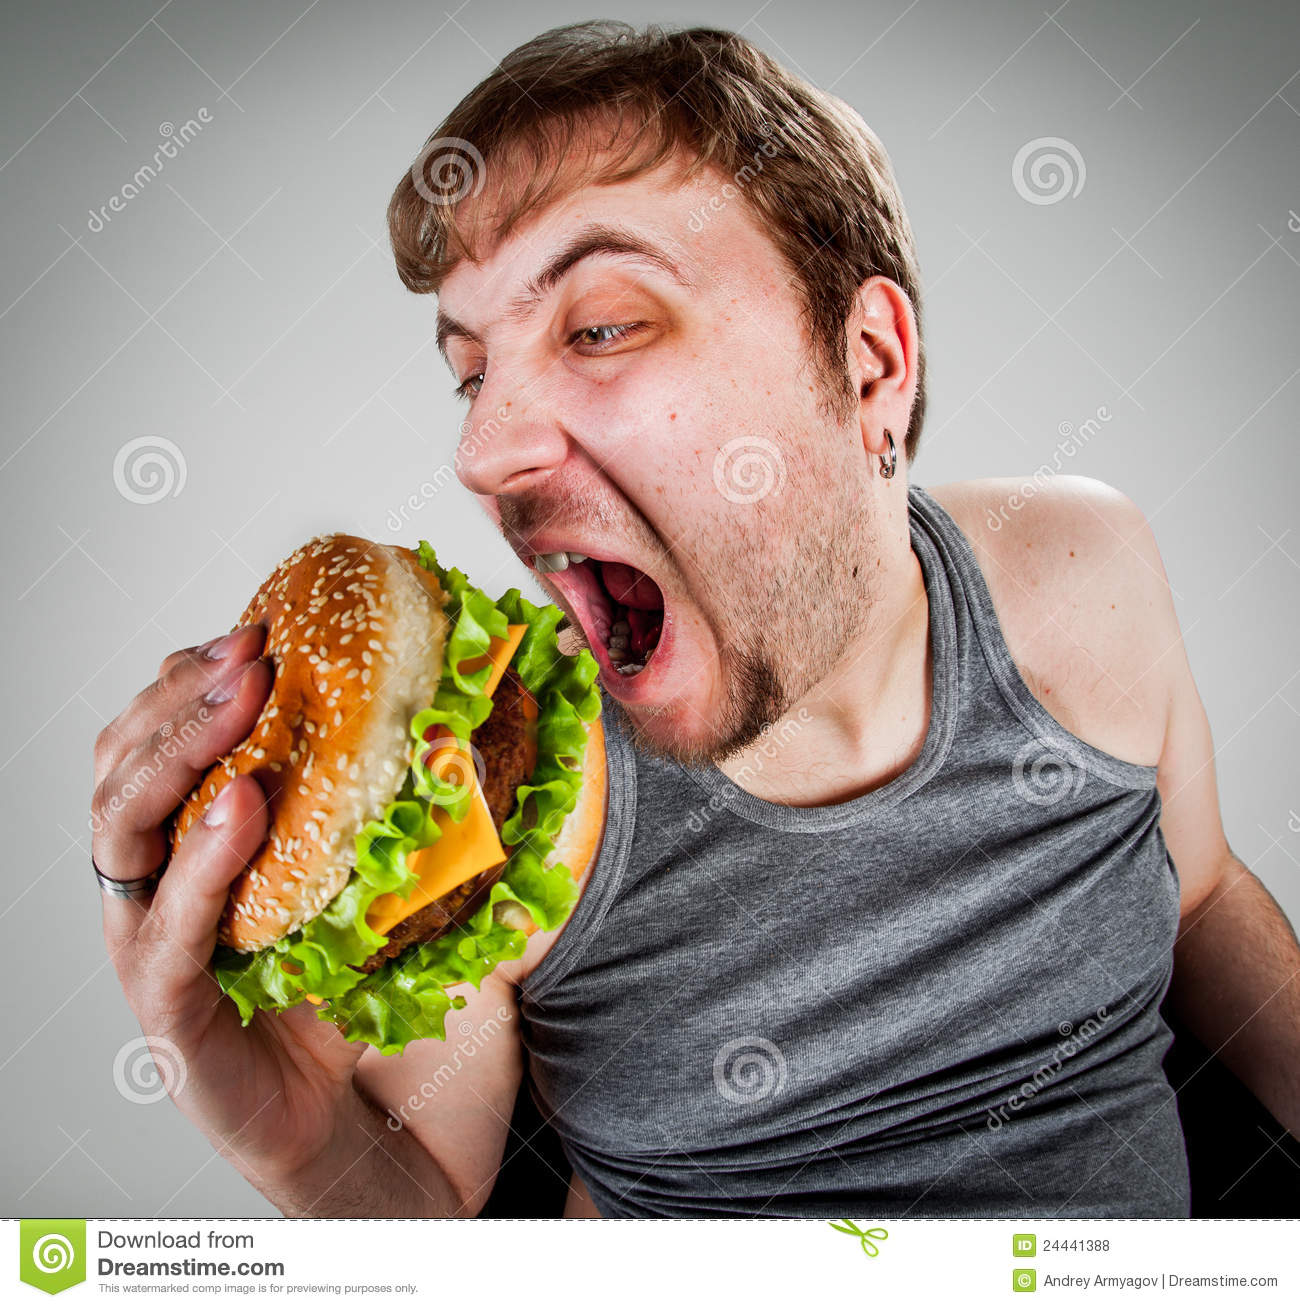 Fat Man Eating Hamburger Royalty Free Stock Photos - Image: 24441388